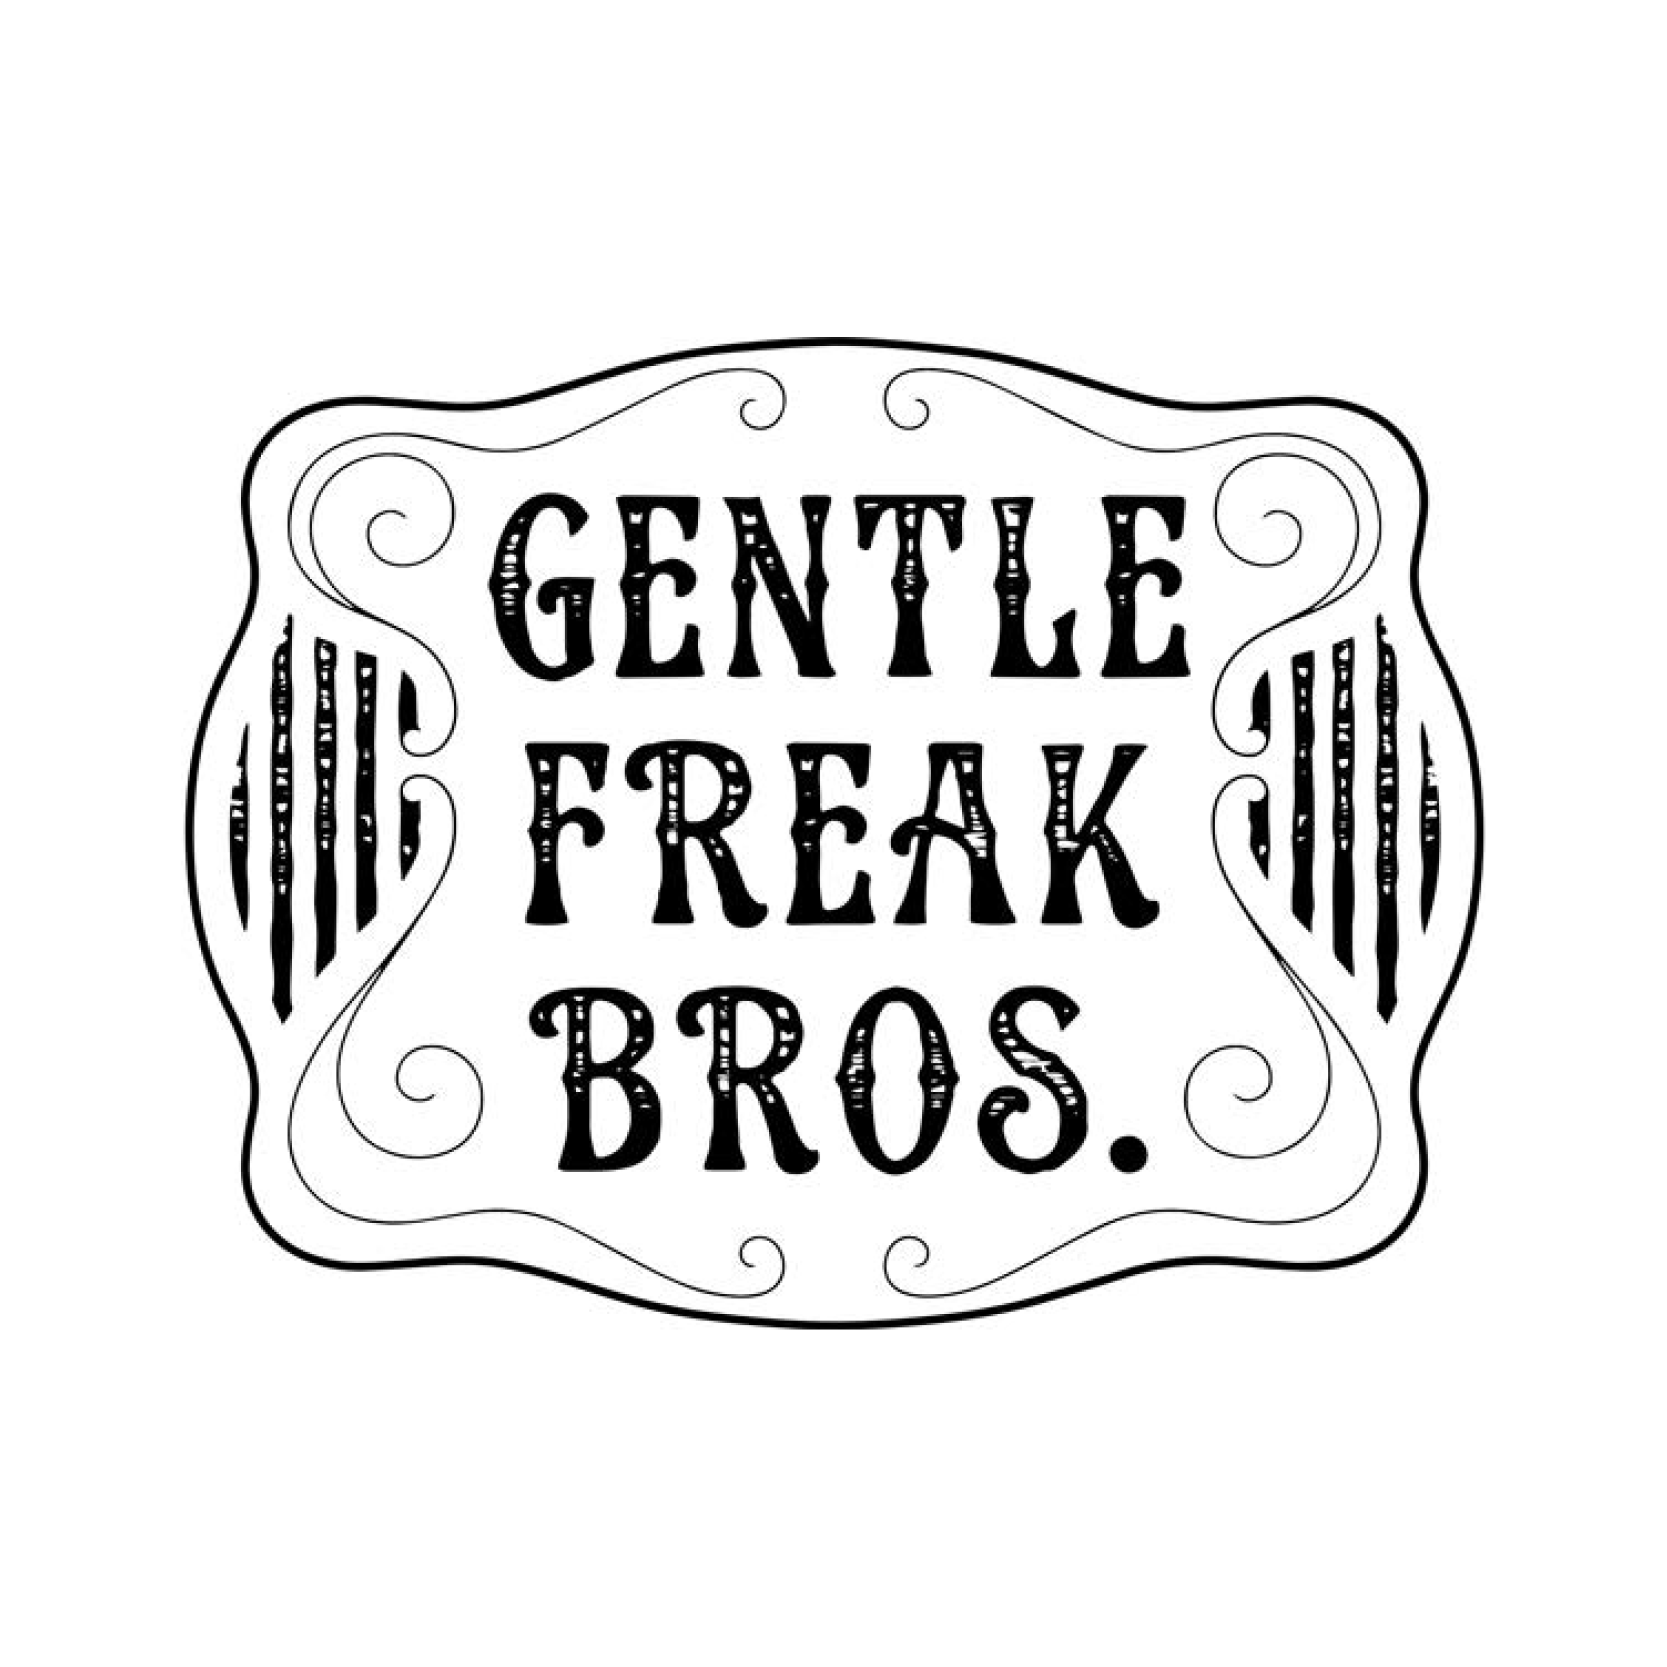 Gentle Freak Bros